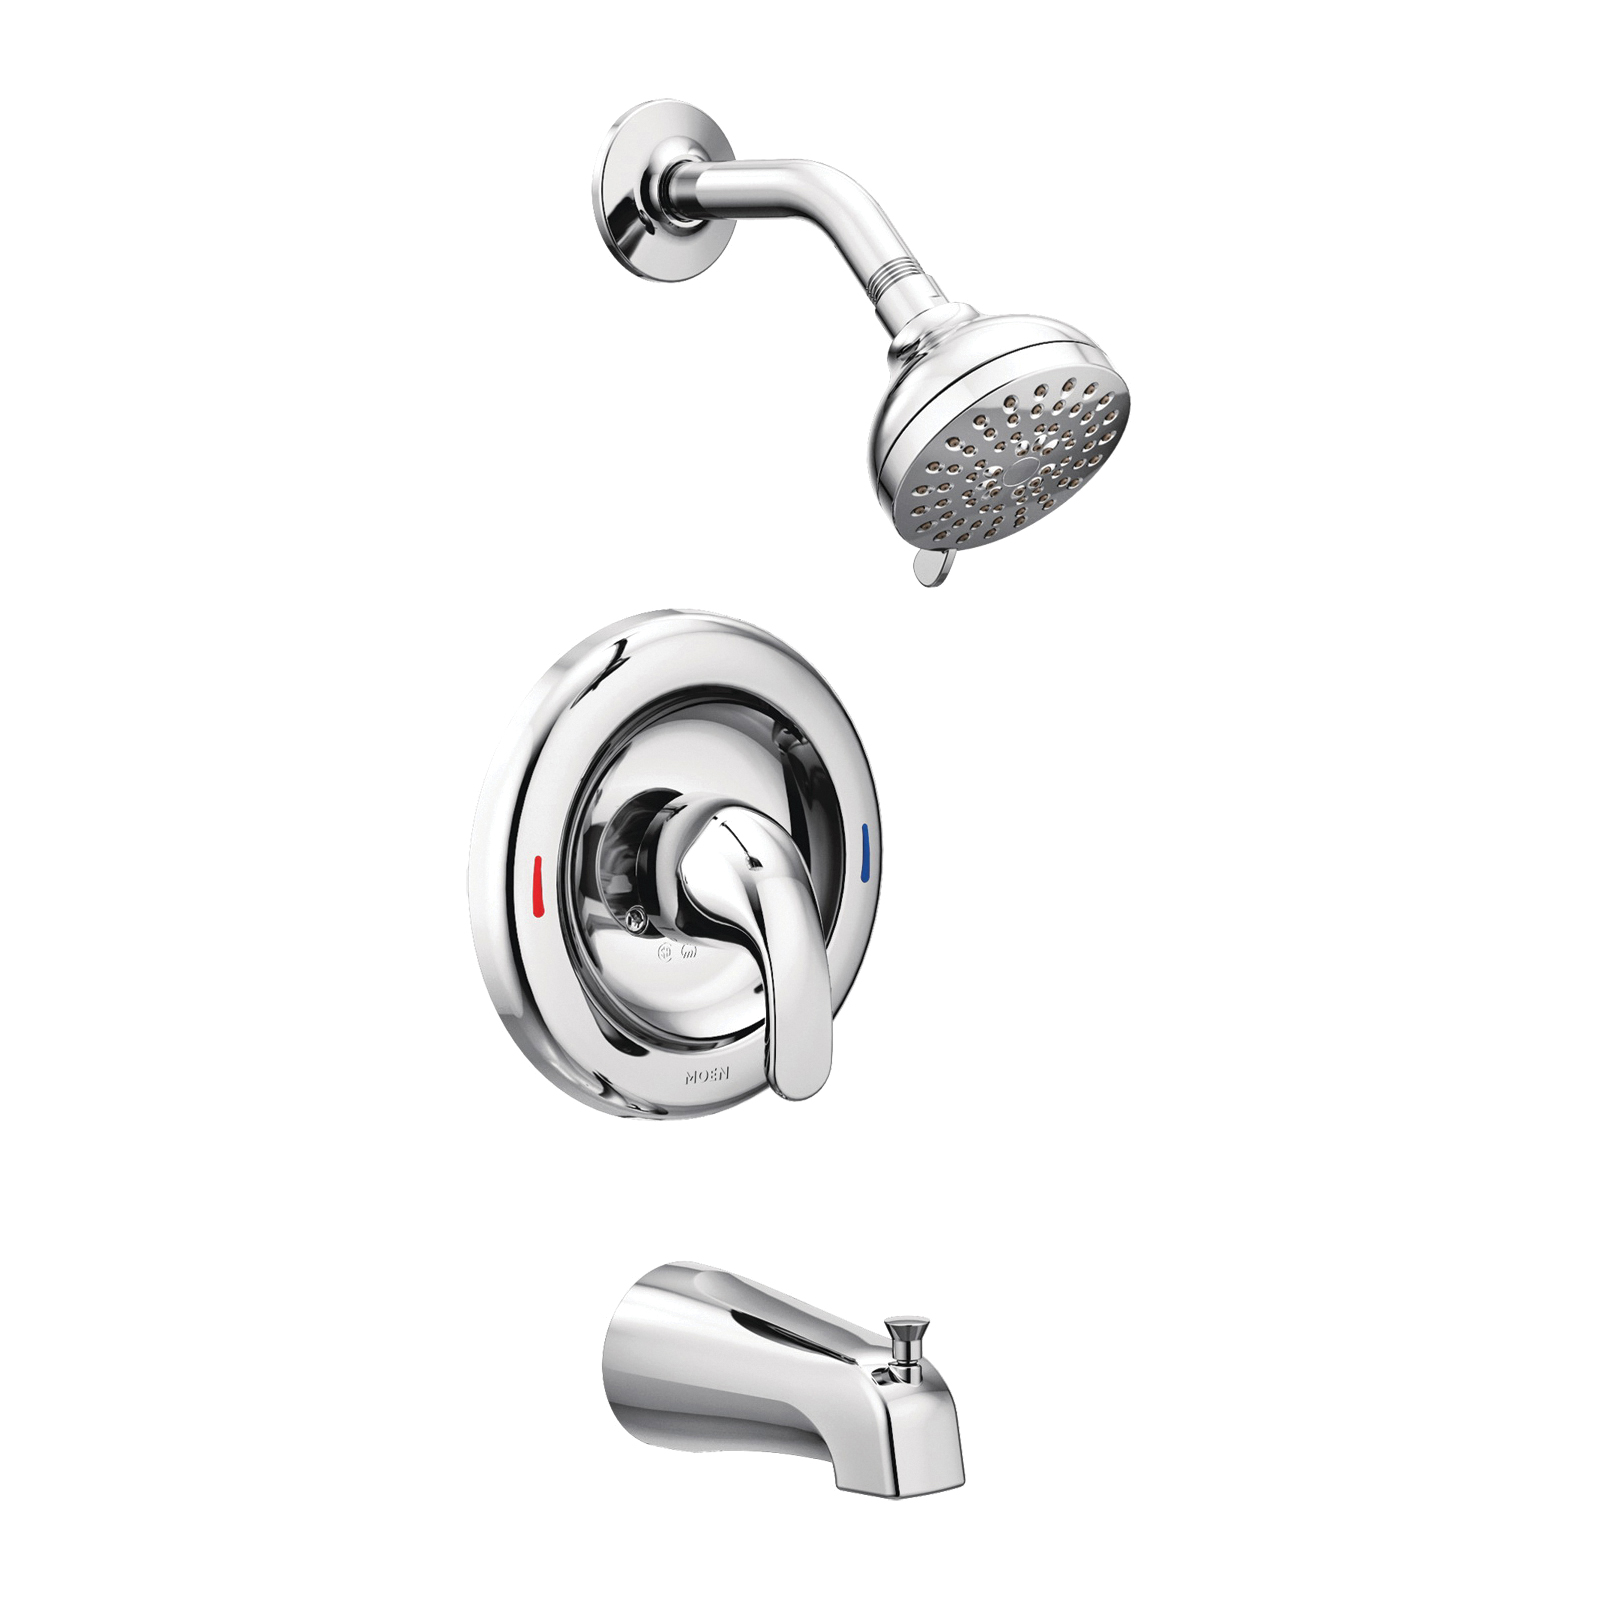 Picture of Moen Adler 82603 Tub/Shower Faucet, 1.75 gpm Showerhead, 1-Handle, Metal, Chrome